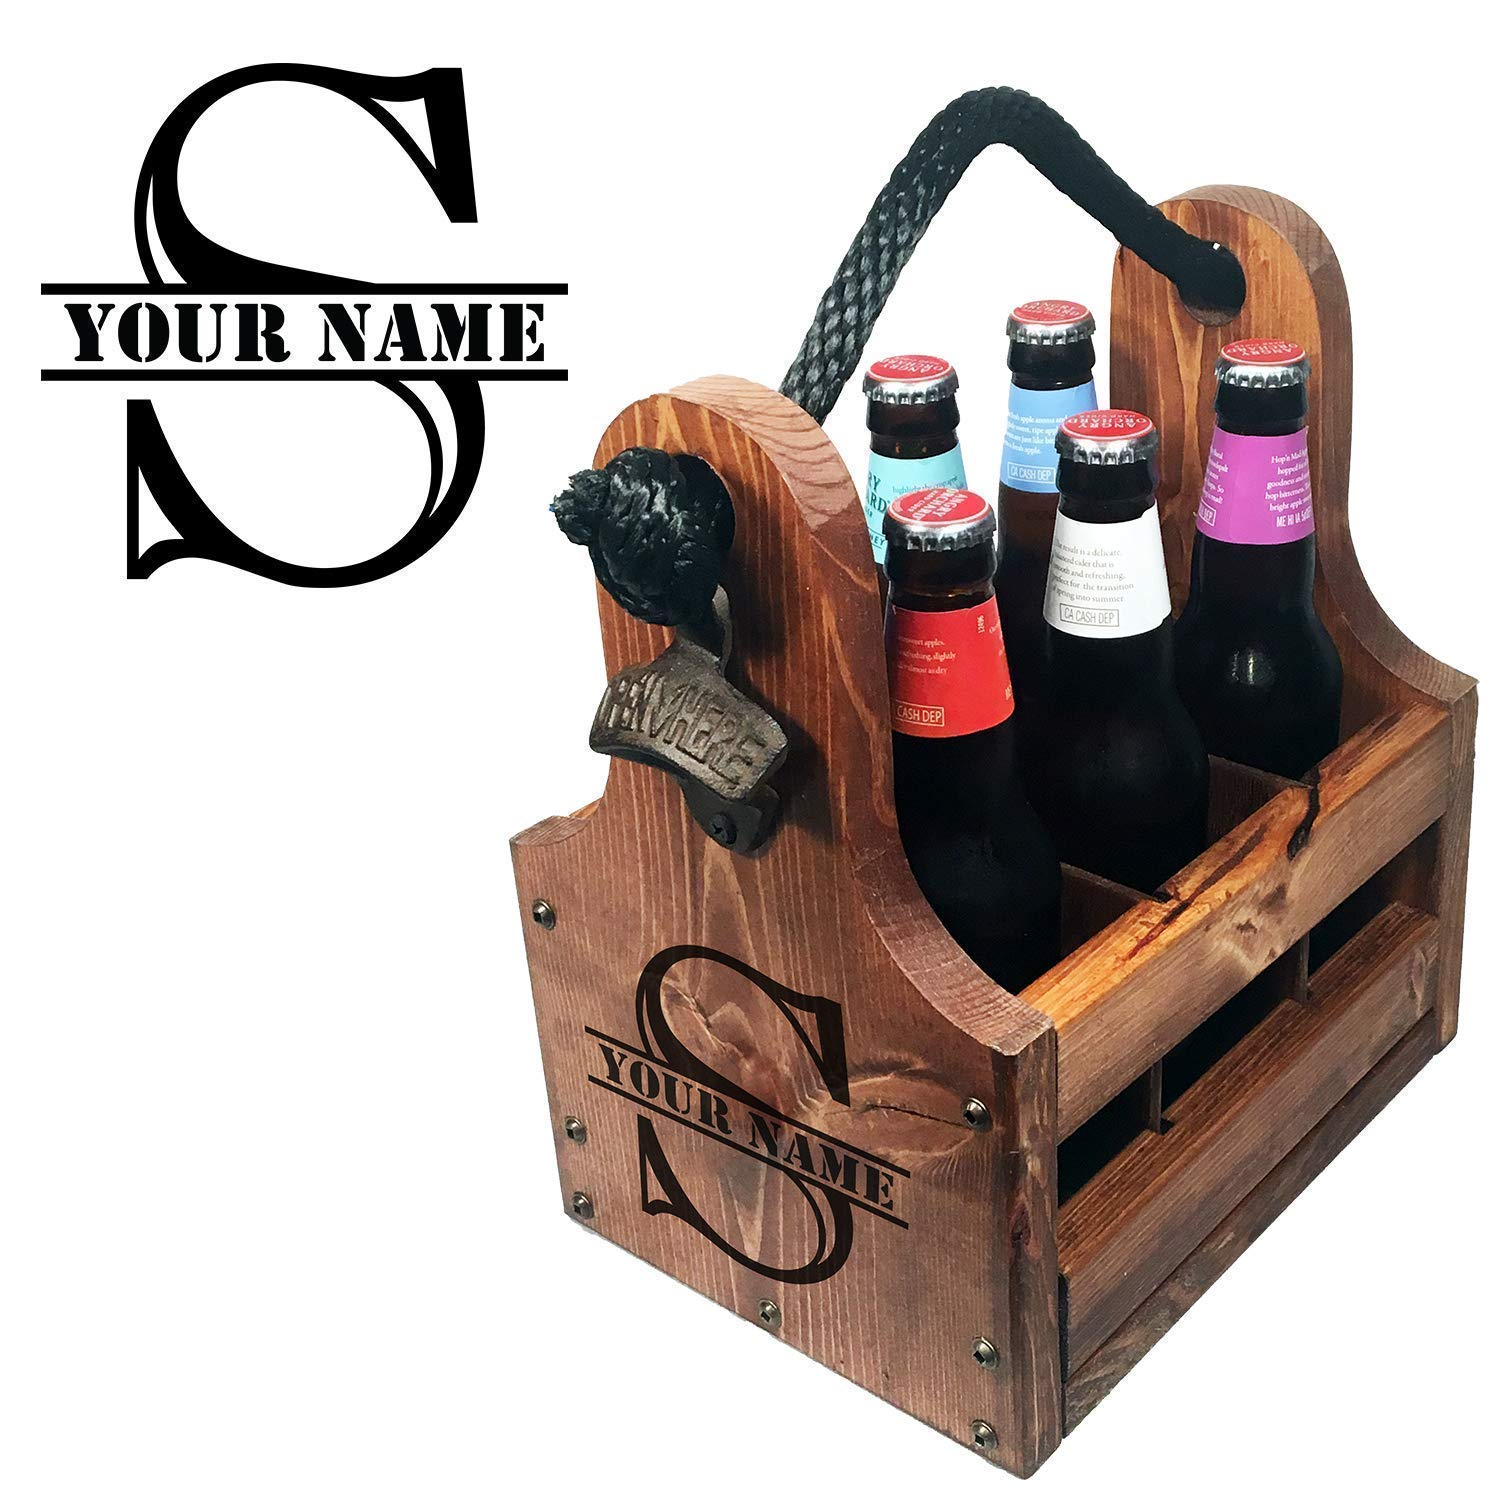 Wood Beer Caddy with Bottle Opener & Magnetic Cap Catch, 6-Pack with Removable Dividers Personalizable Gifts for Groomsmen, Craft Beer Fans, Brewers and more by Veteran Crafted